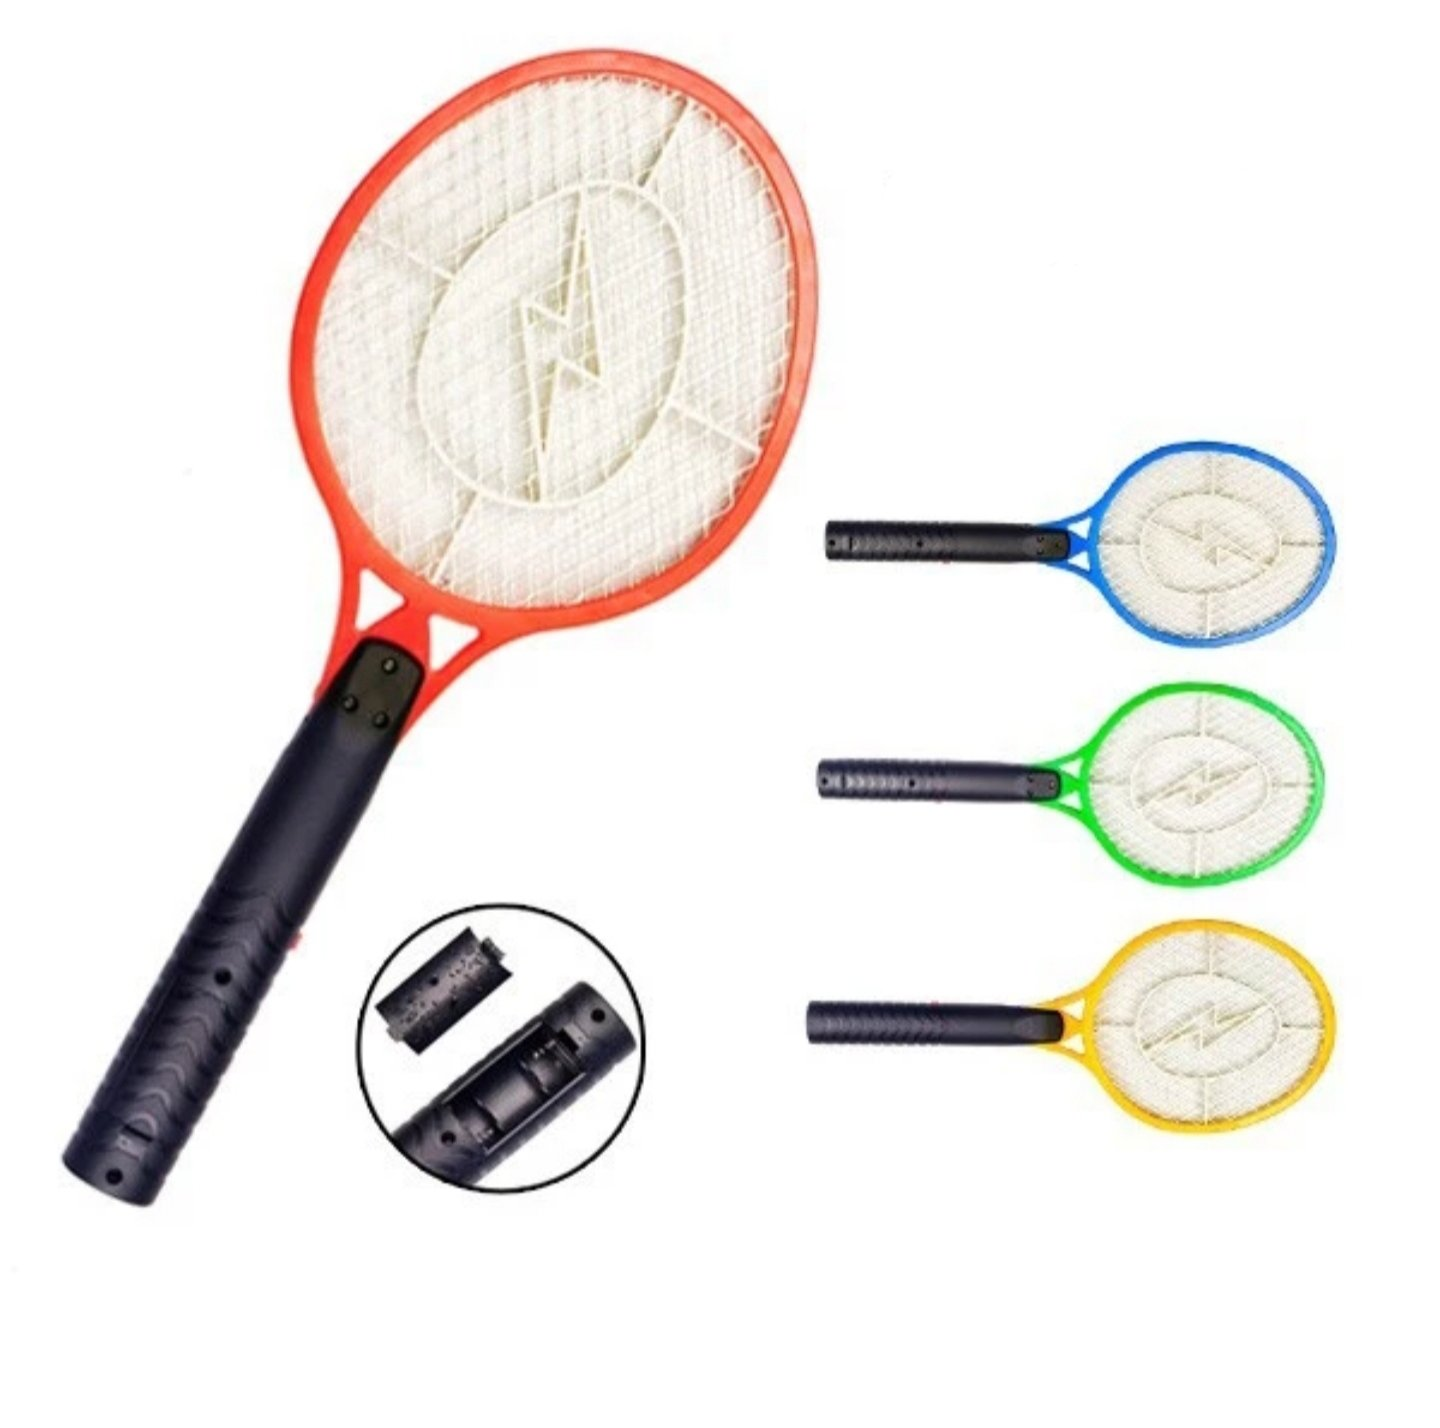 Handheld Bug Zapper Electric Bug Zapper Fly/Mosquito Swatter Best for Indoor and Outdoor Pest Control by Zapz (Image #3)